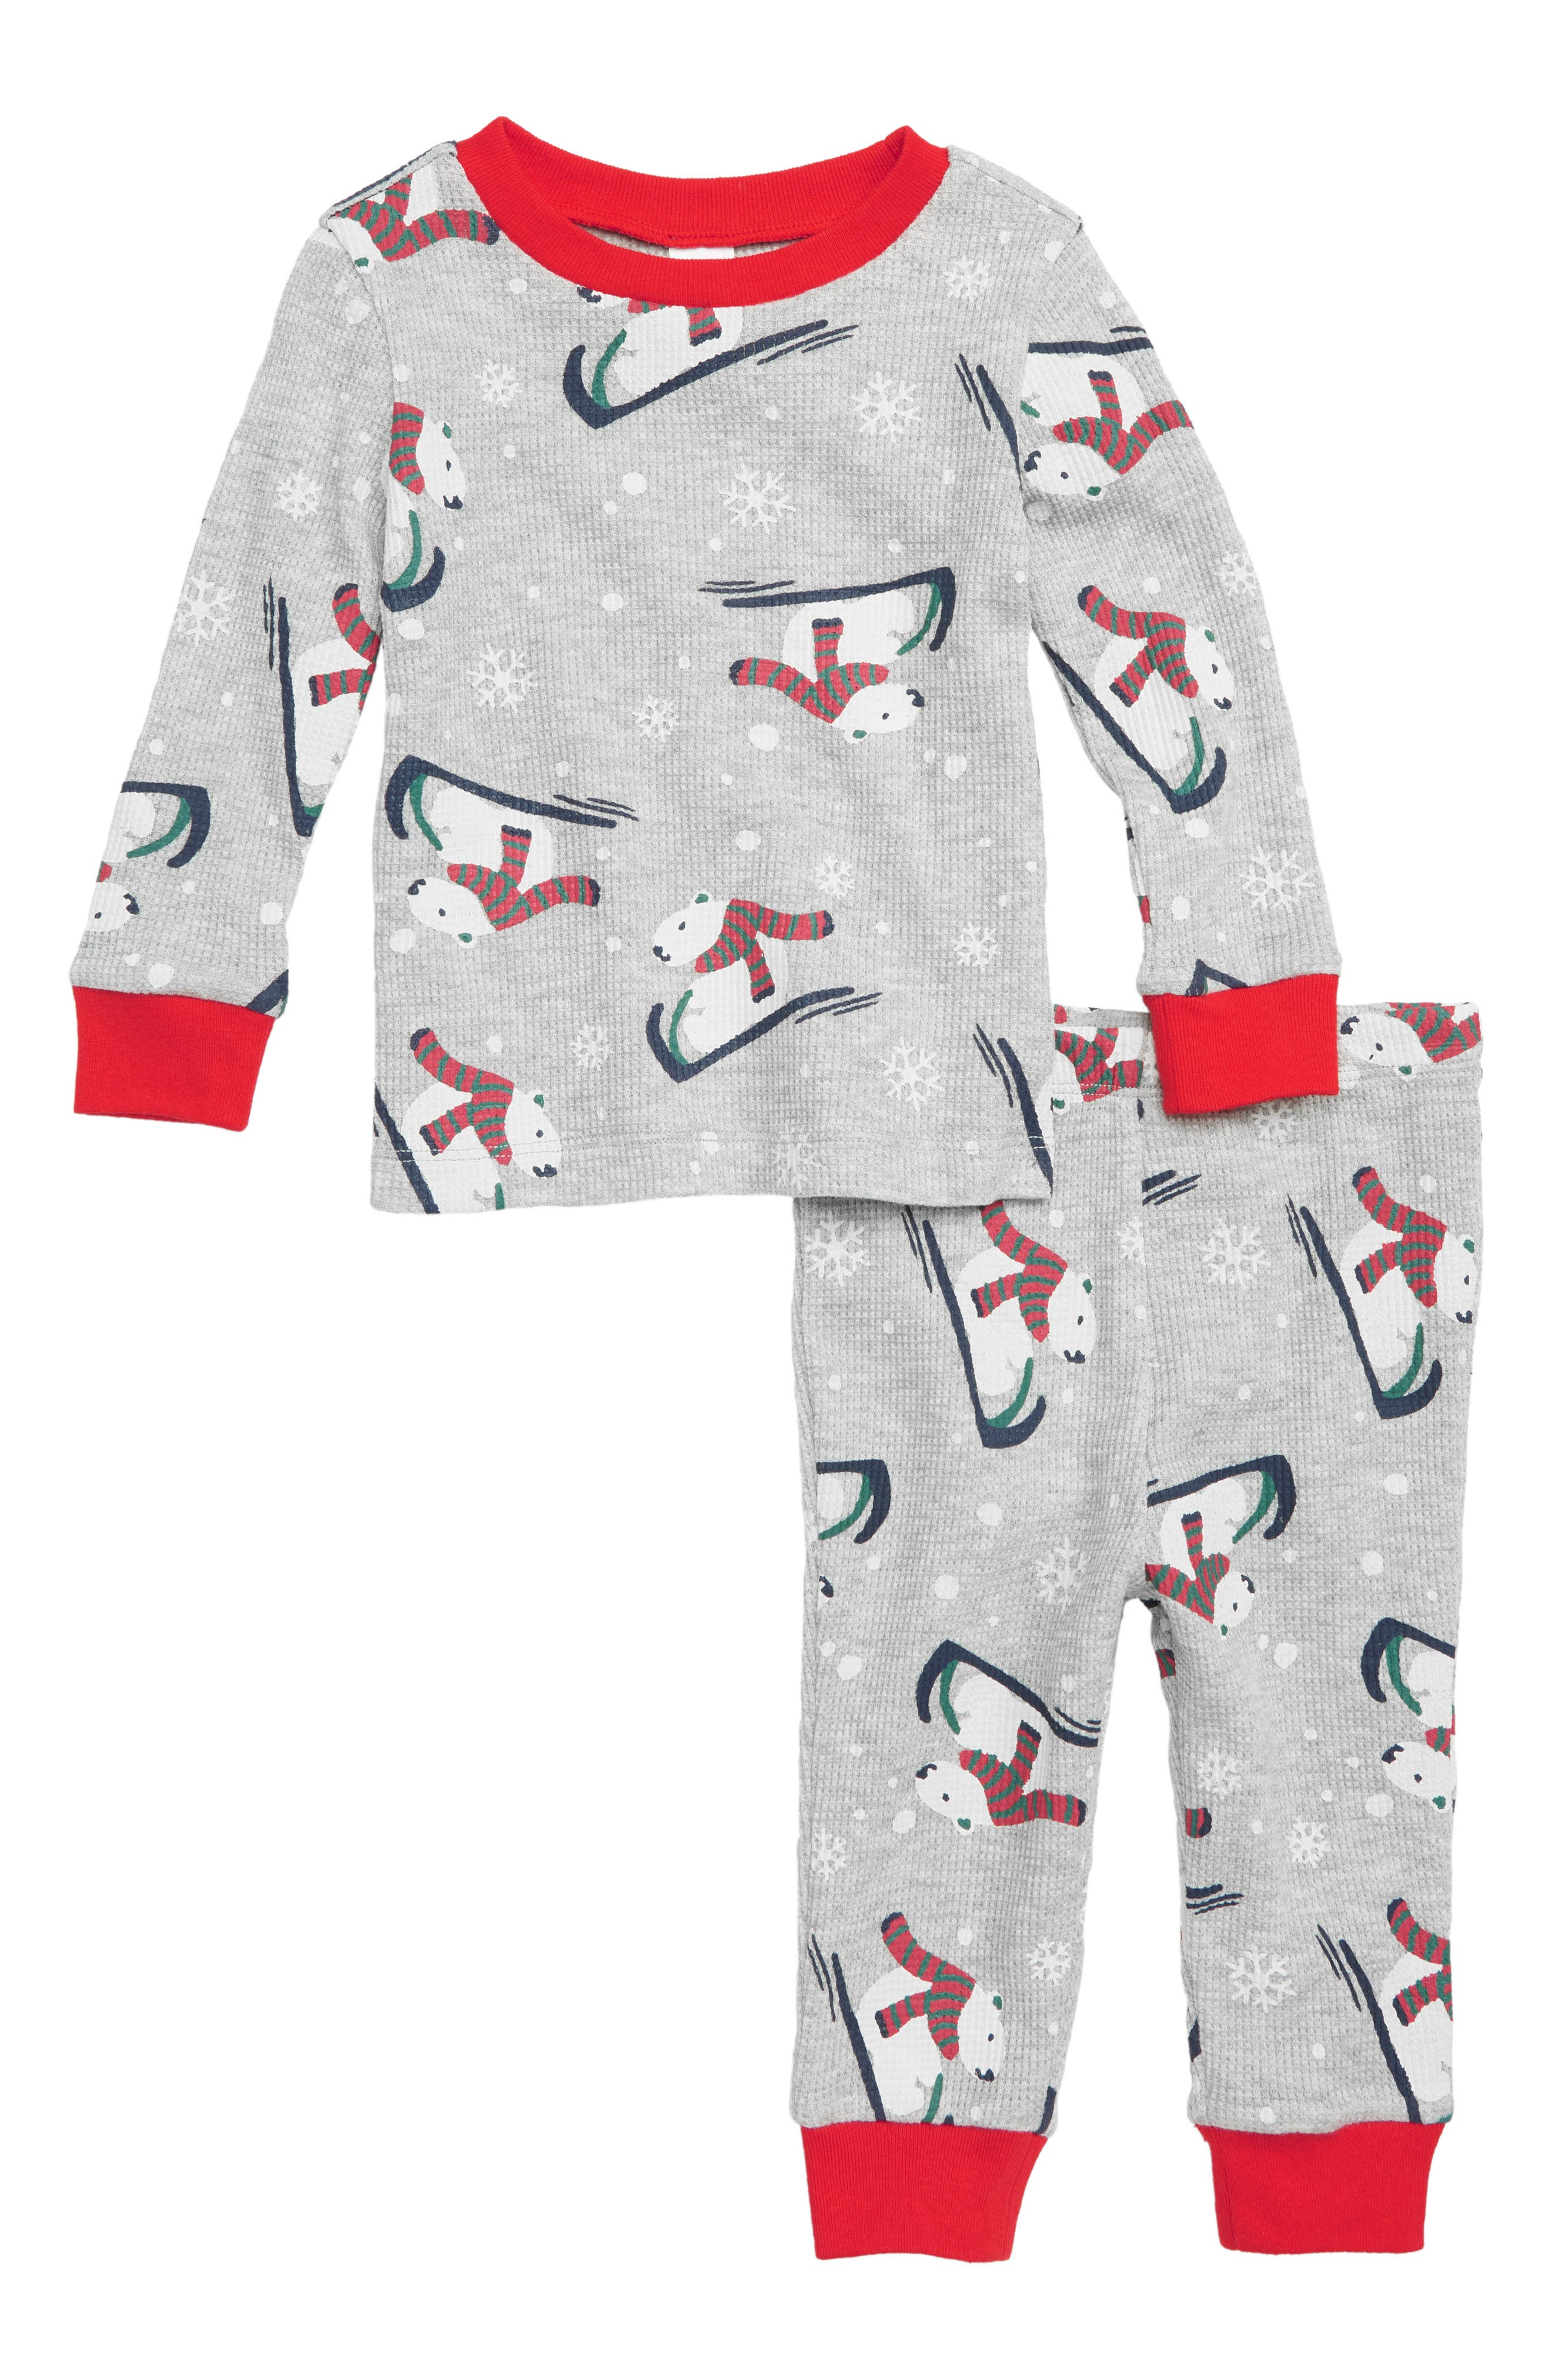 Thermal Fitted Two-Piece Pajamas,                             Main thumbnail 1, color,                             GREY PEARL HEATHER POLAR BEAR